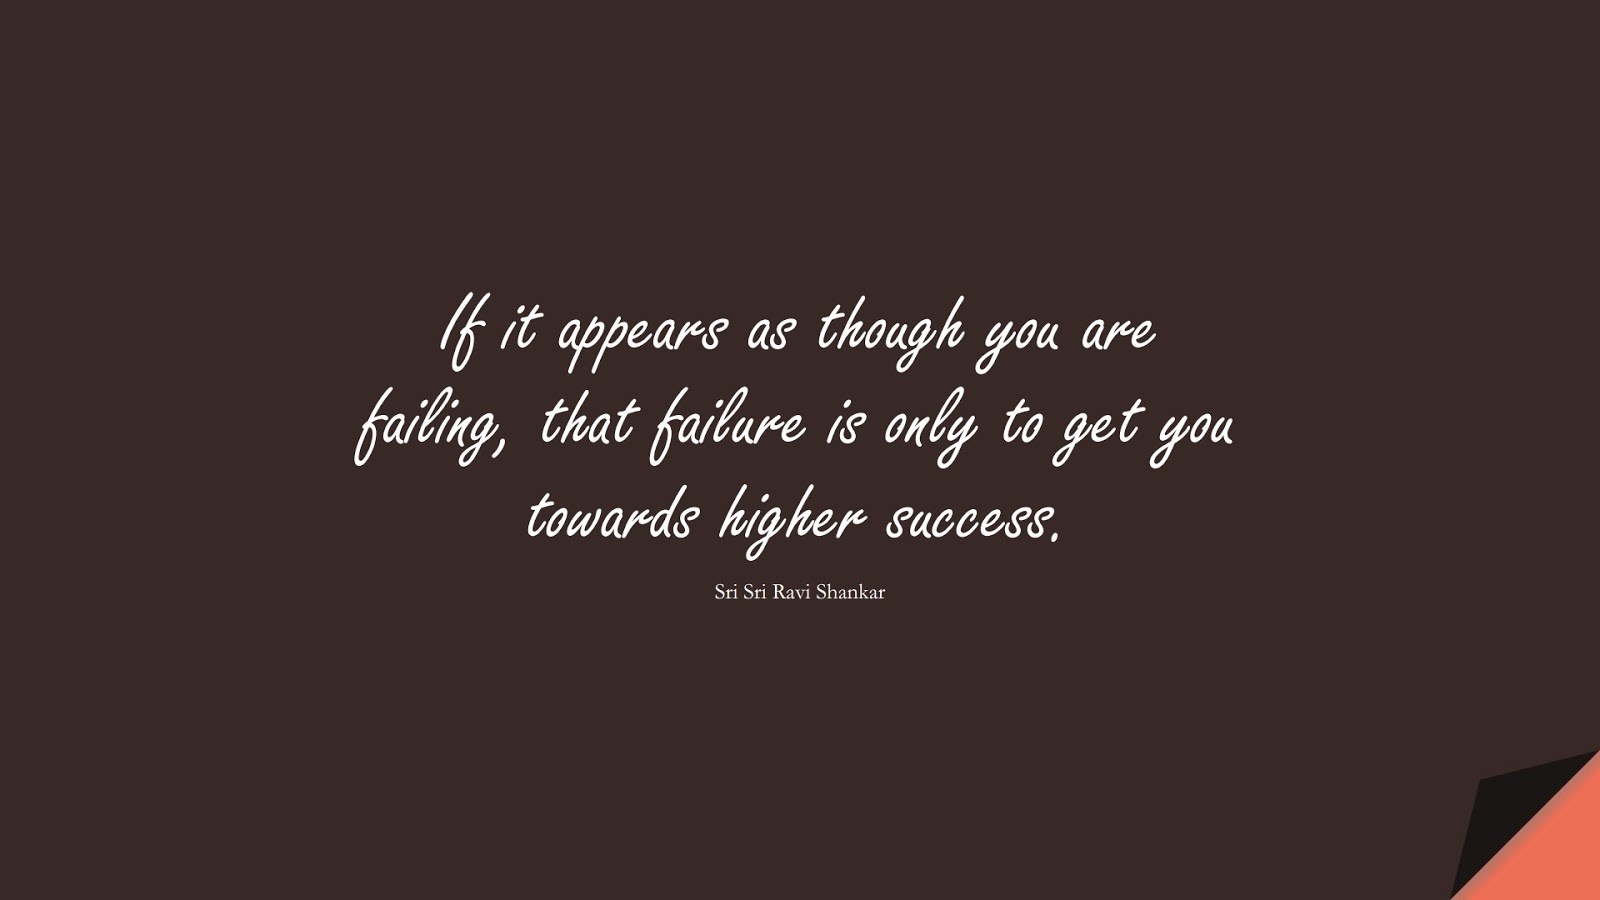 If it appears as though you are failing, that failure is only to get you towards higher success. (Sri Sri Ravi Shankar);  #NeverGiveUpQuotes